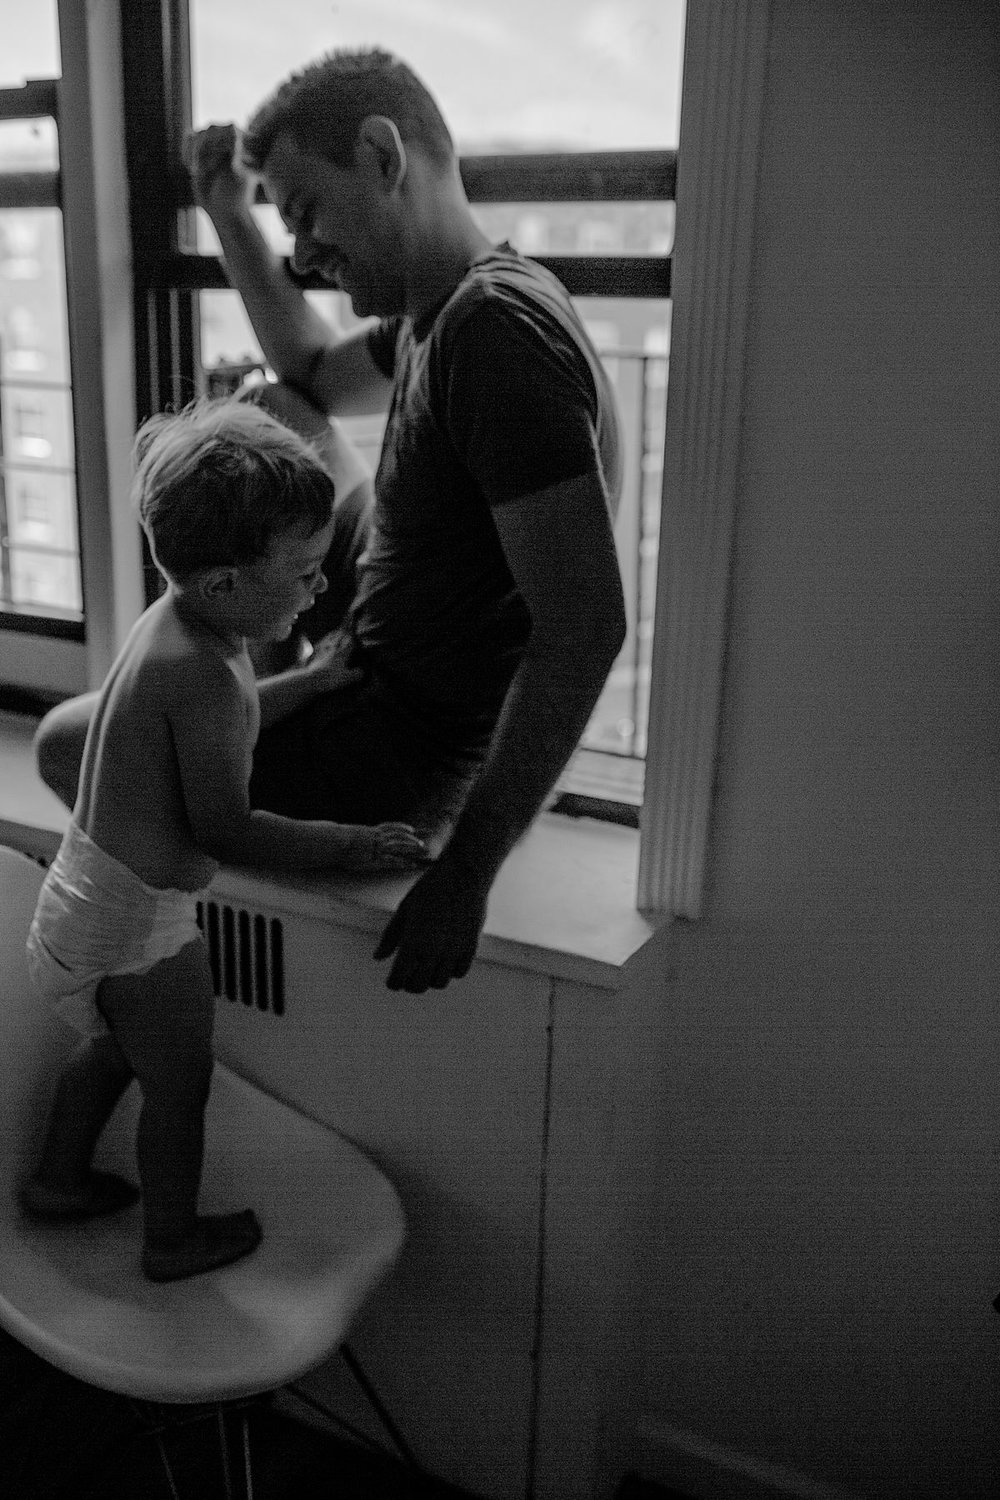 black and white image of dad and son playing in window sill. capturing your candid family moments is krystil mcdowall